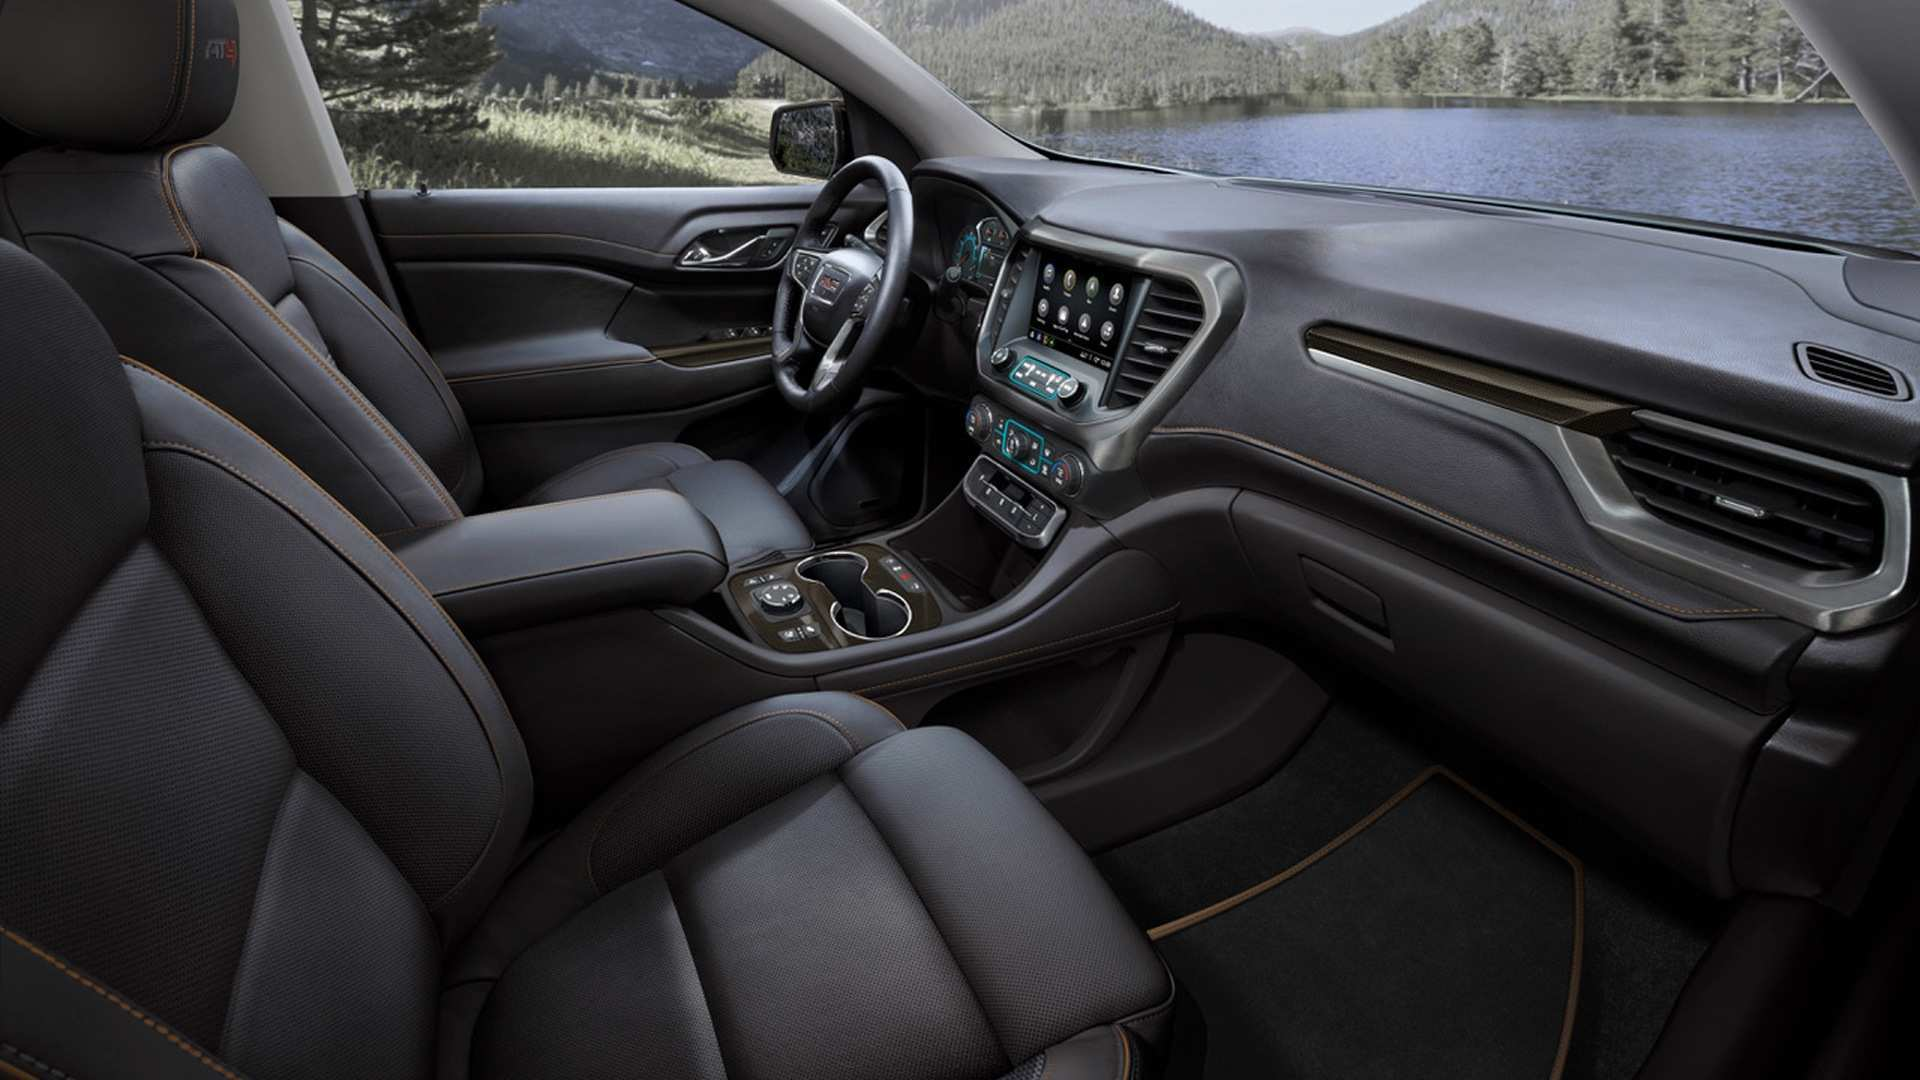 84 A 2020 GMC Interior Price And Review